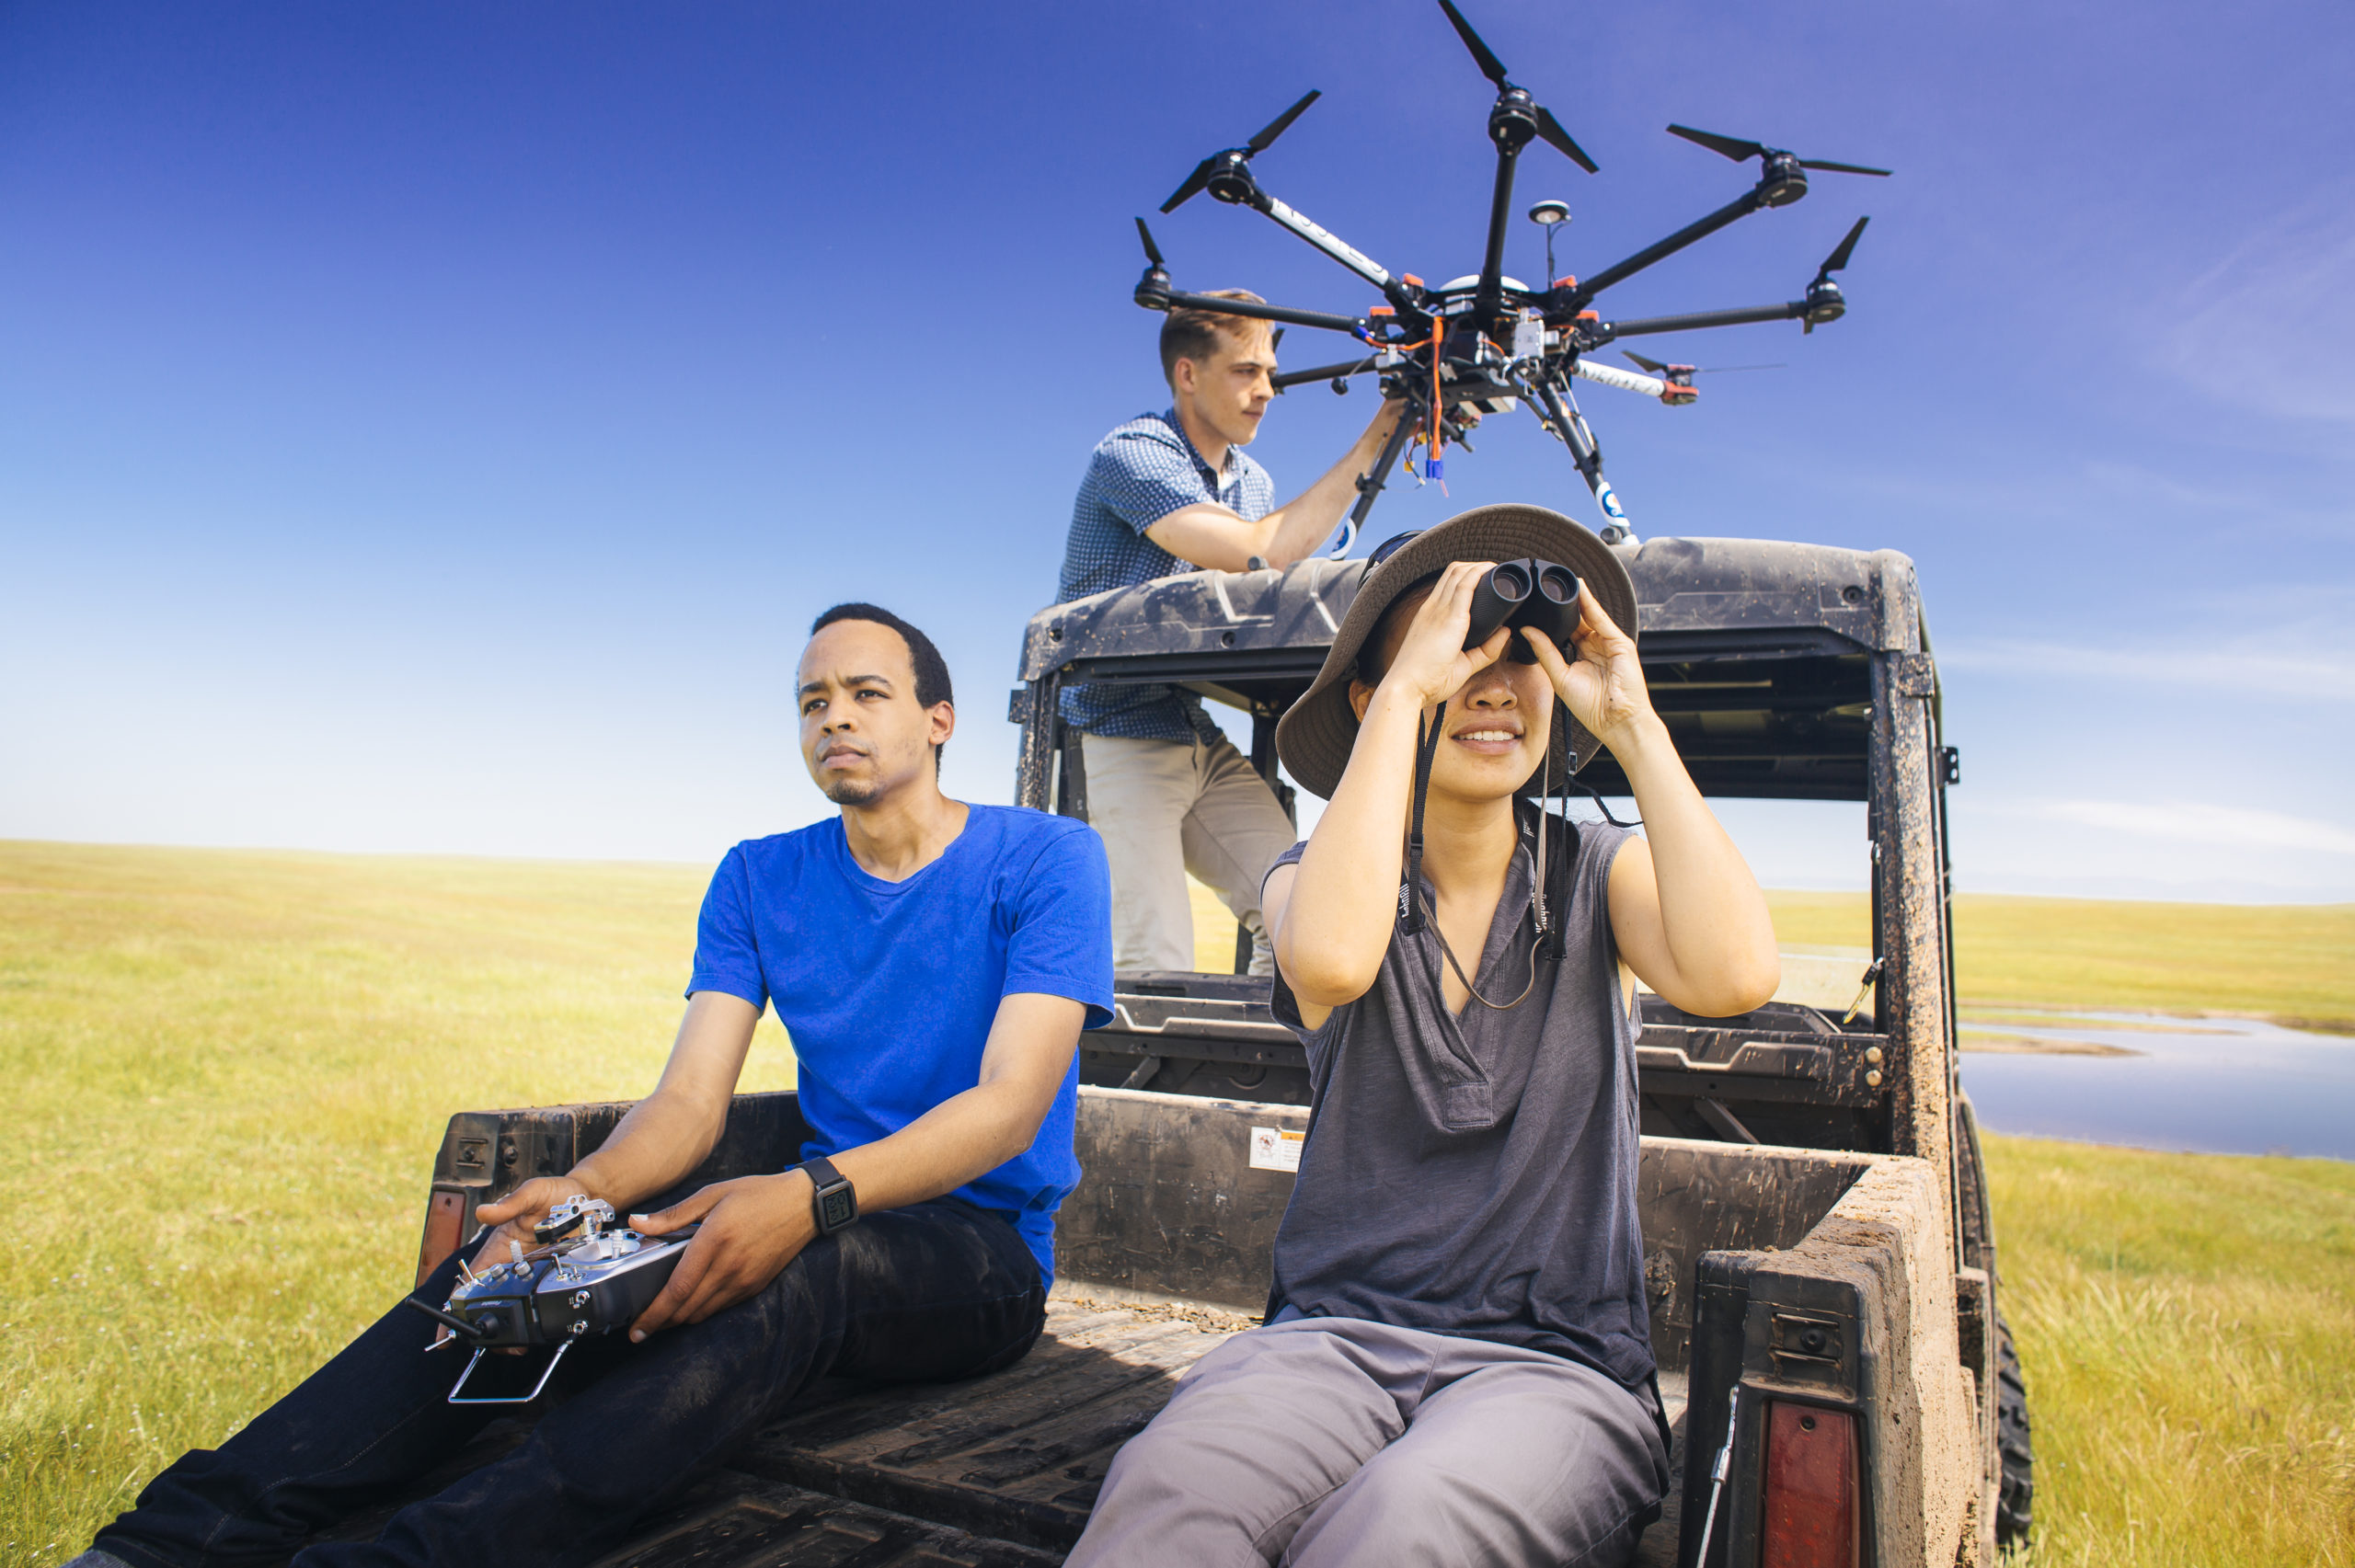 Two students sit in the back of a muddy all-terrain vehicle in a marsh, while another student stands in the cab. One of the students in the ATV bed is holding a UAV controller, and the other is looking through a pair of binoculars. The standing student is holding a large UAV with eight rotors.